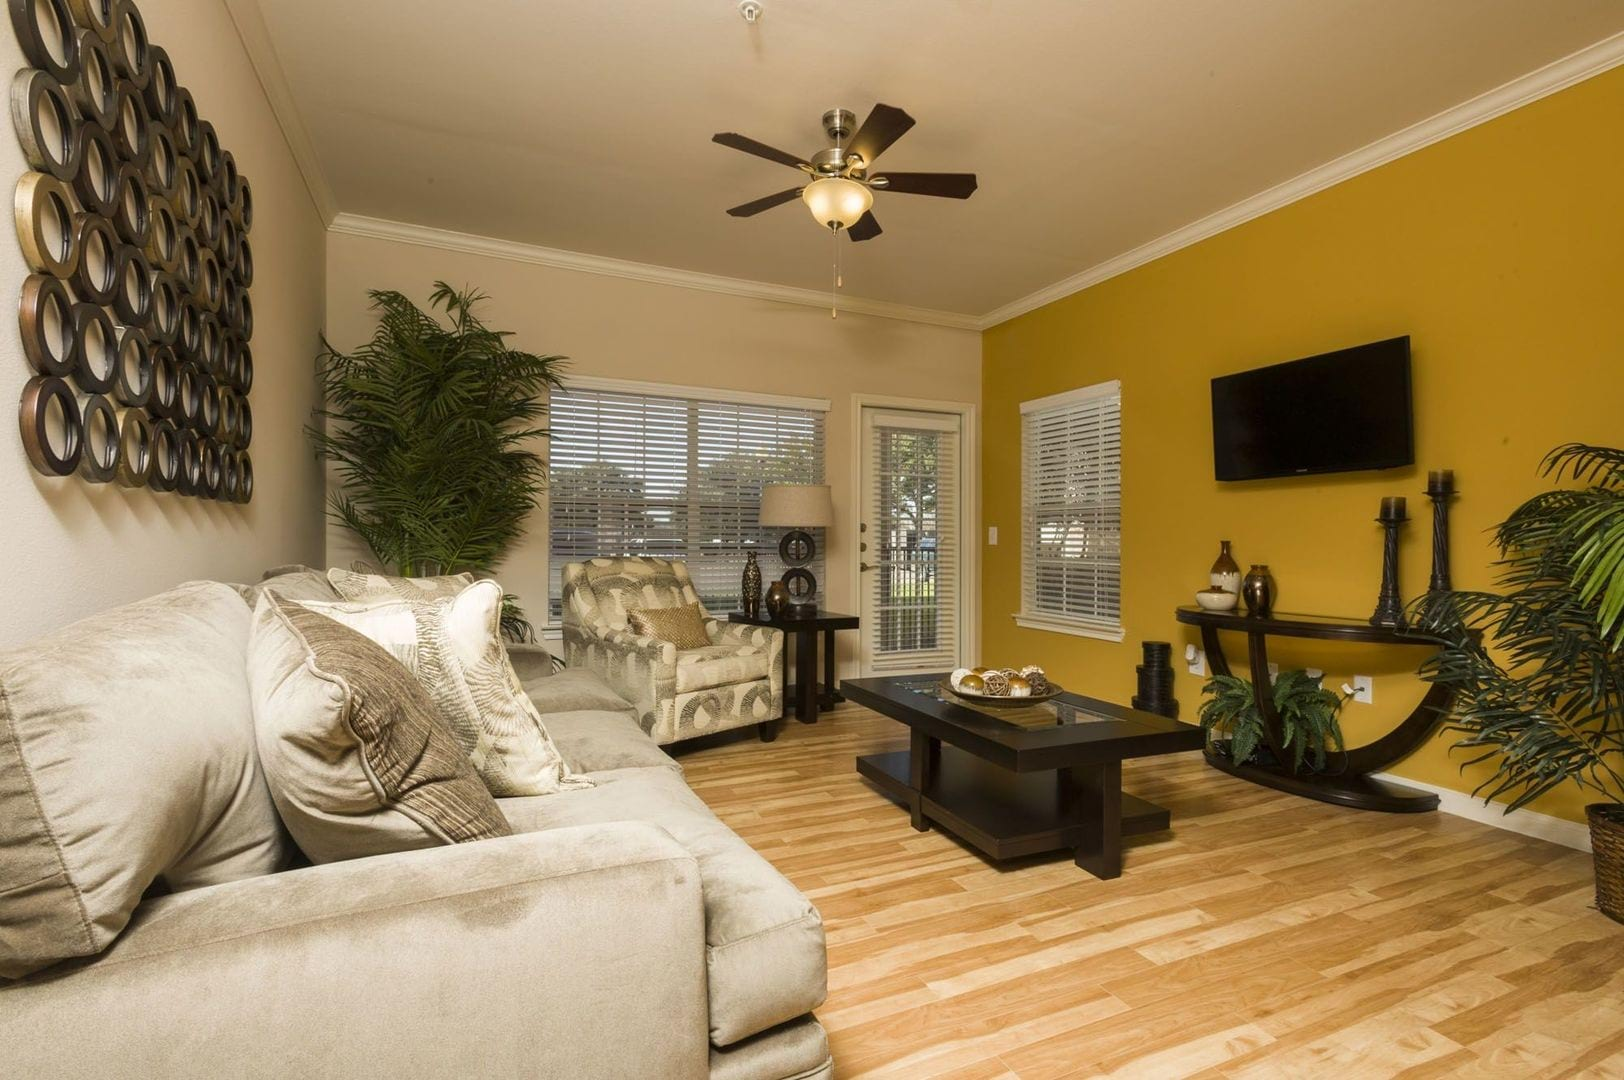 Apartments for rent in houston tx club at copperleaf home - Cheap 2 bedroom apartments in houston tx ...